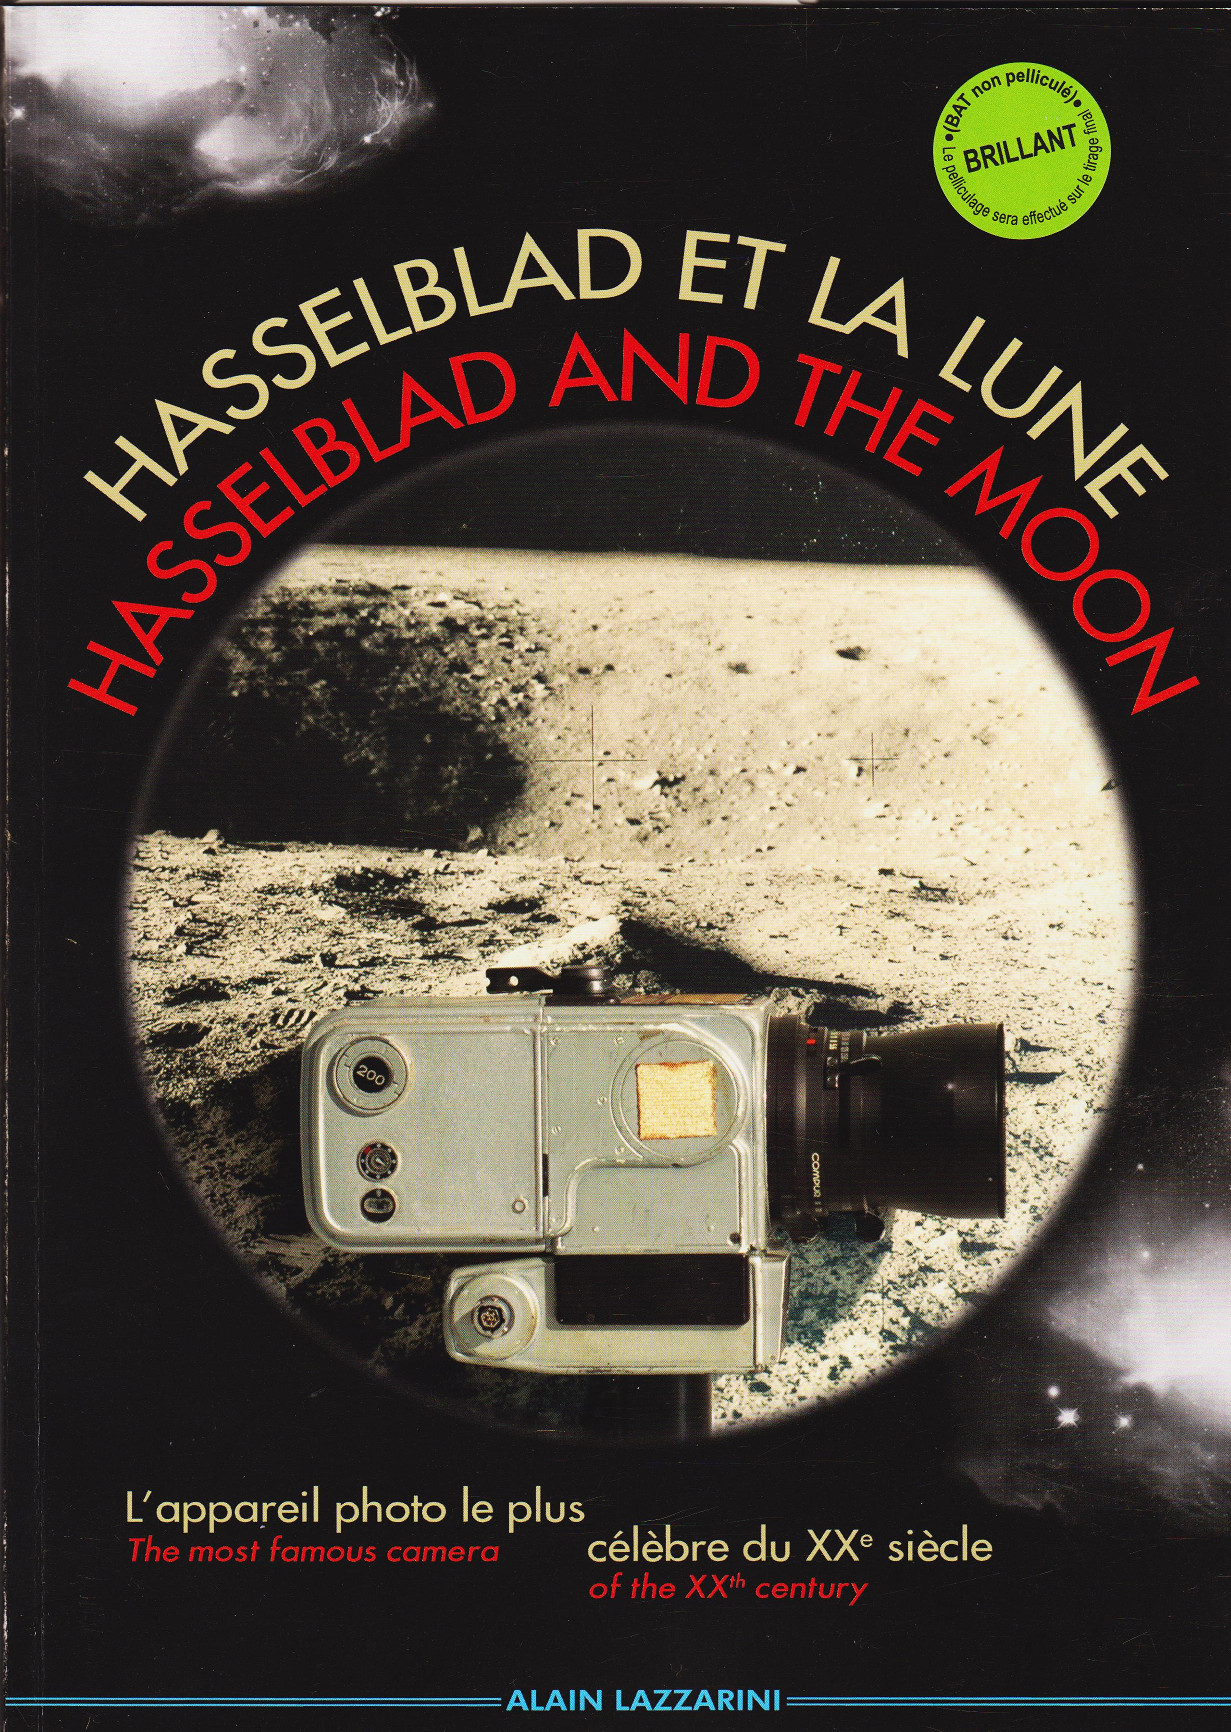 Hasselblad and the Moon - Cover page